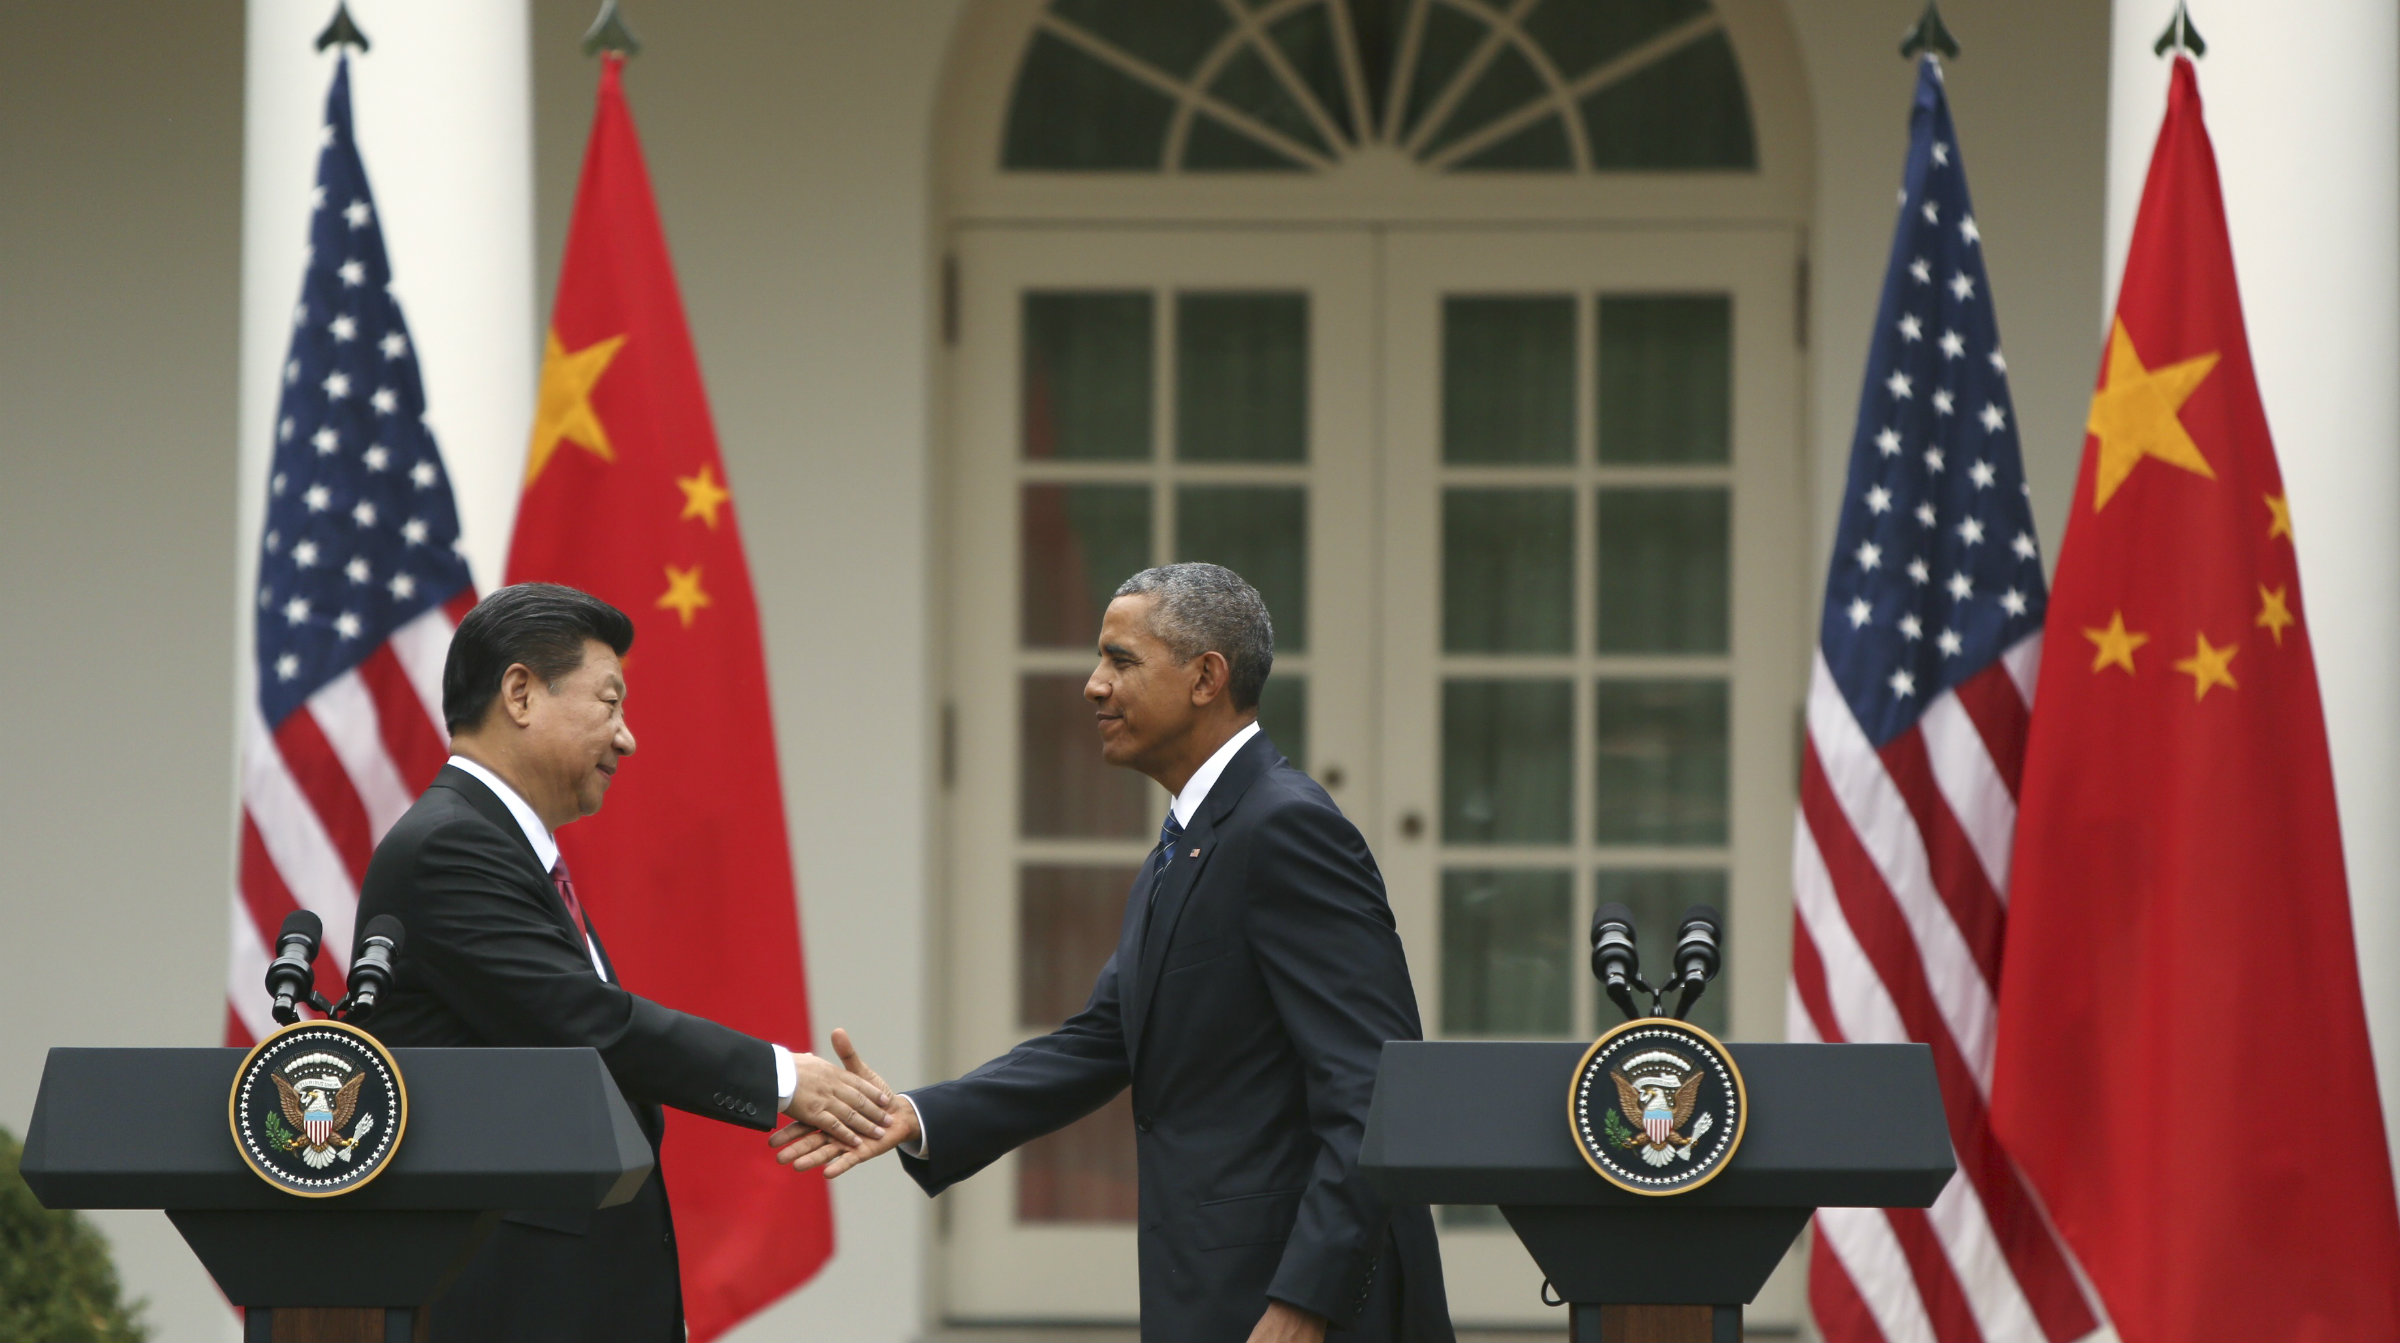 Xi Jinping and Barack Obama shake hands after announcing an agreement not to support cybertheft of each others' corporate trade secrets.